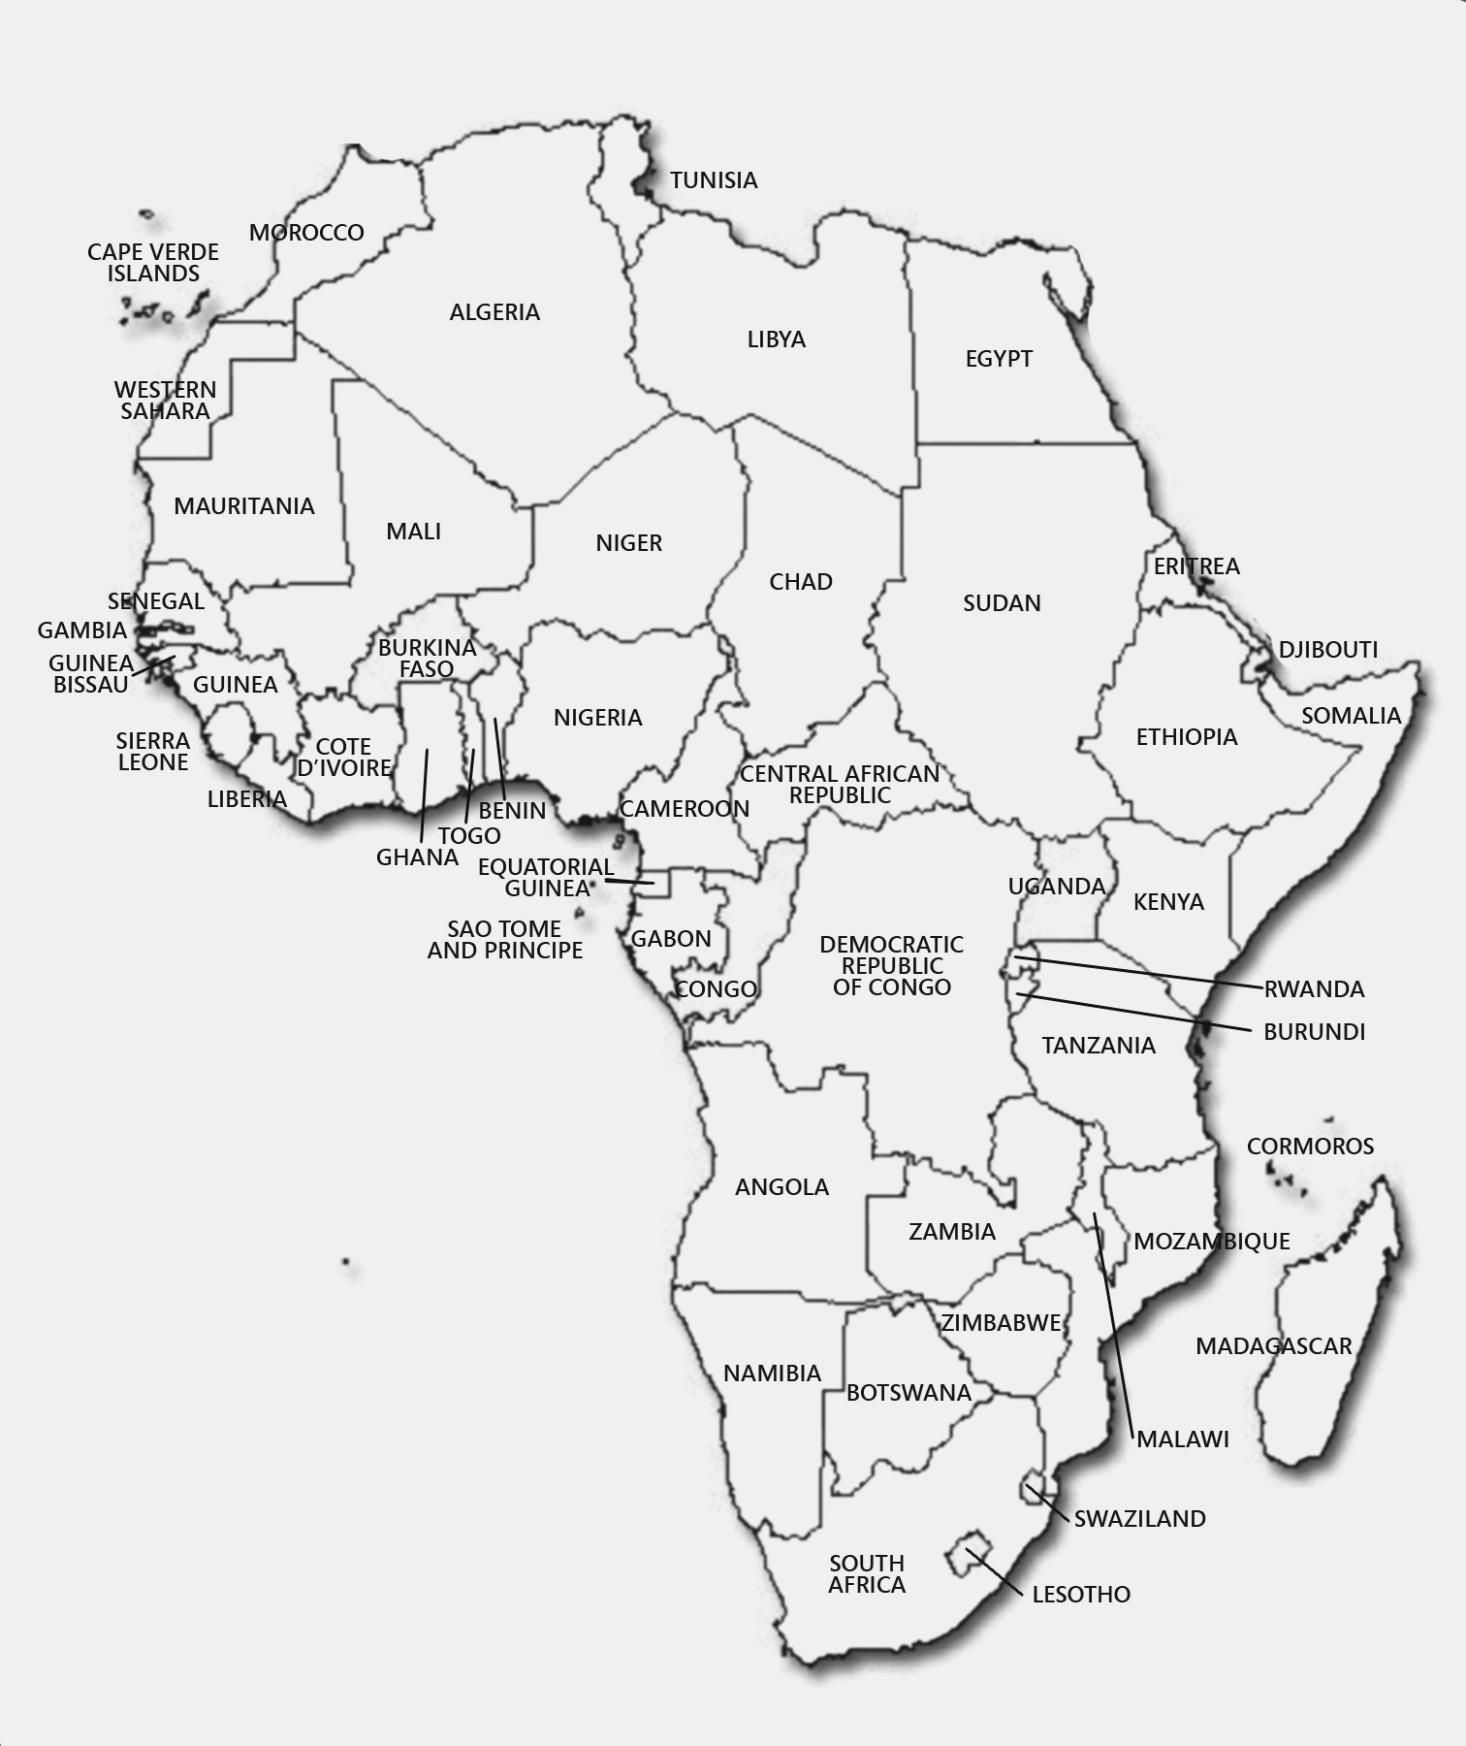 Is Printable Map Of Africa With Countries   Label Maker Ideas - Printable Map Of Africa With Countries Labeled